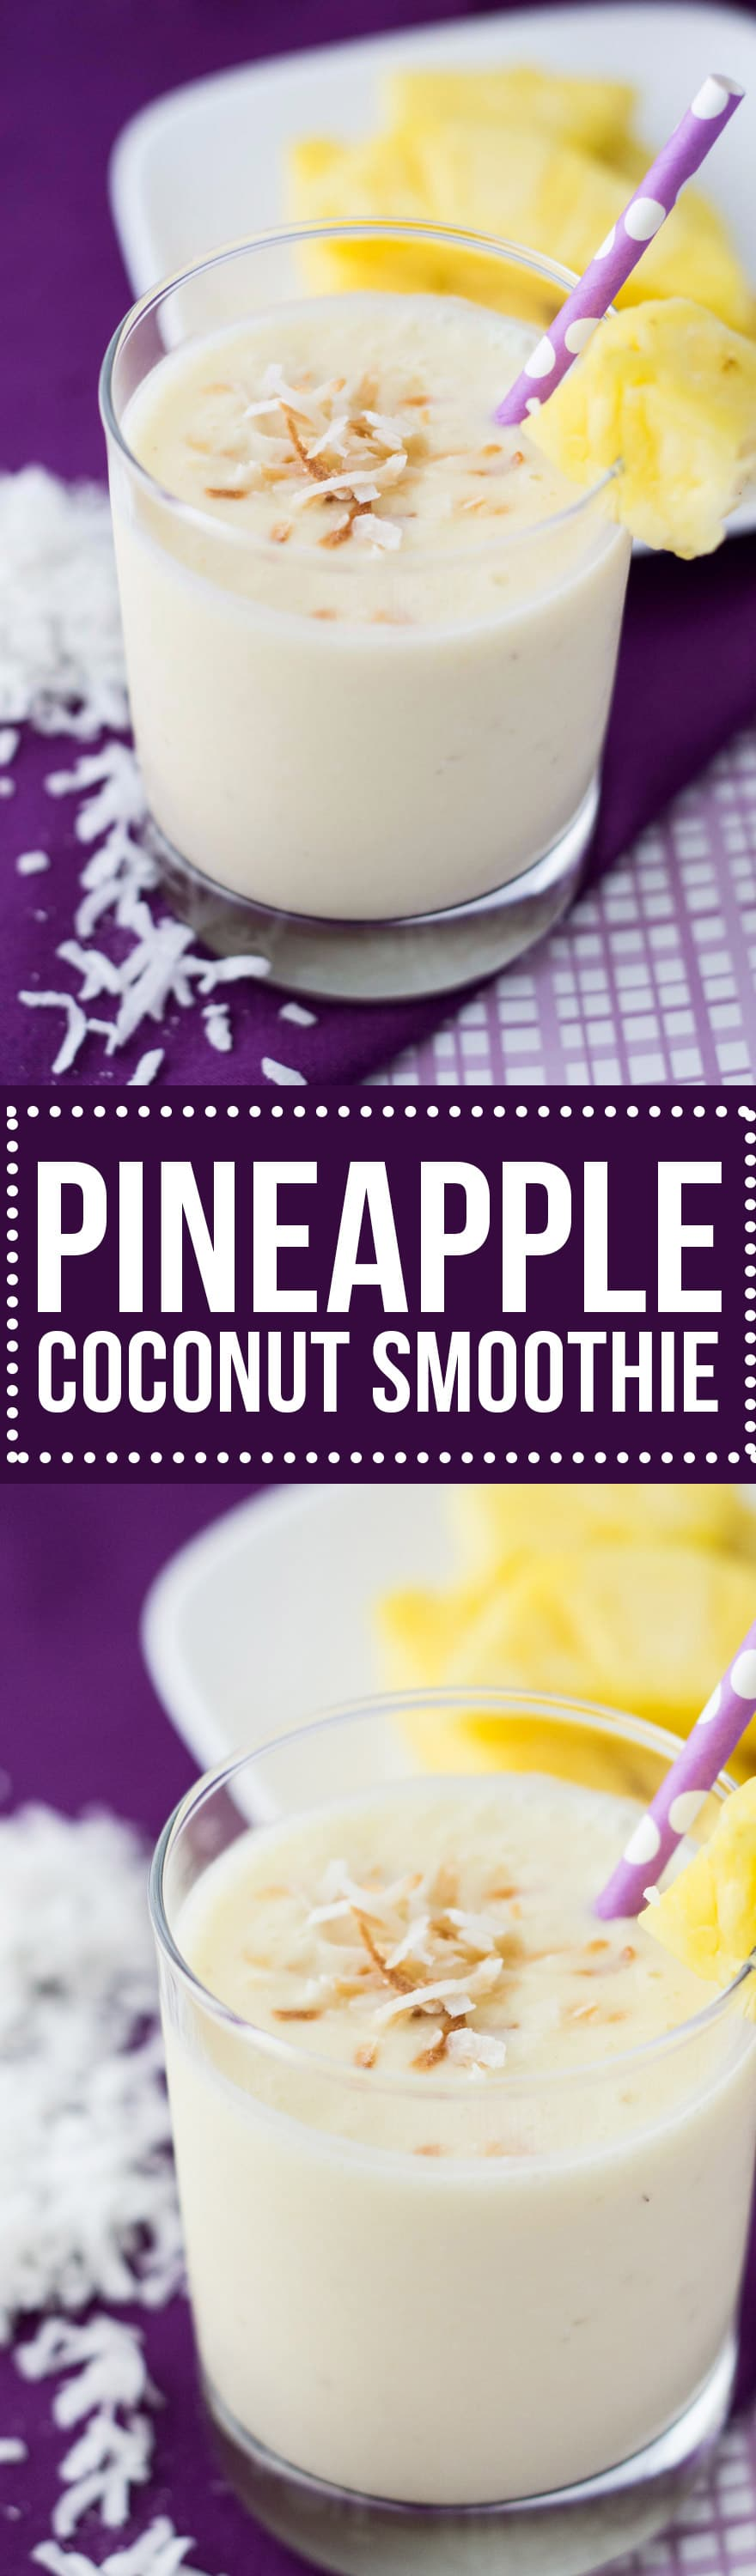 This creamy, dreamy Pineapple Coconut Smoothie will become your go-to smoothie recipe when the weather's hot. It's so smooth and refreshing!